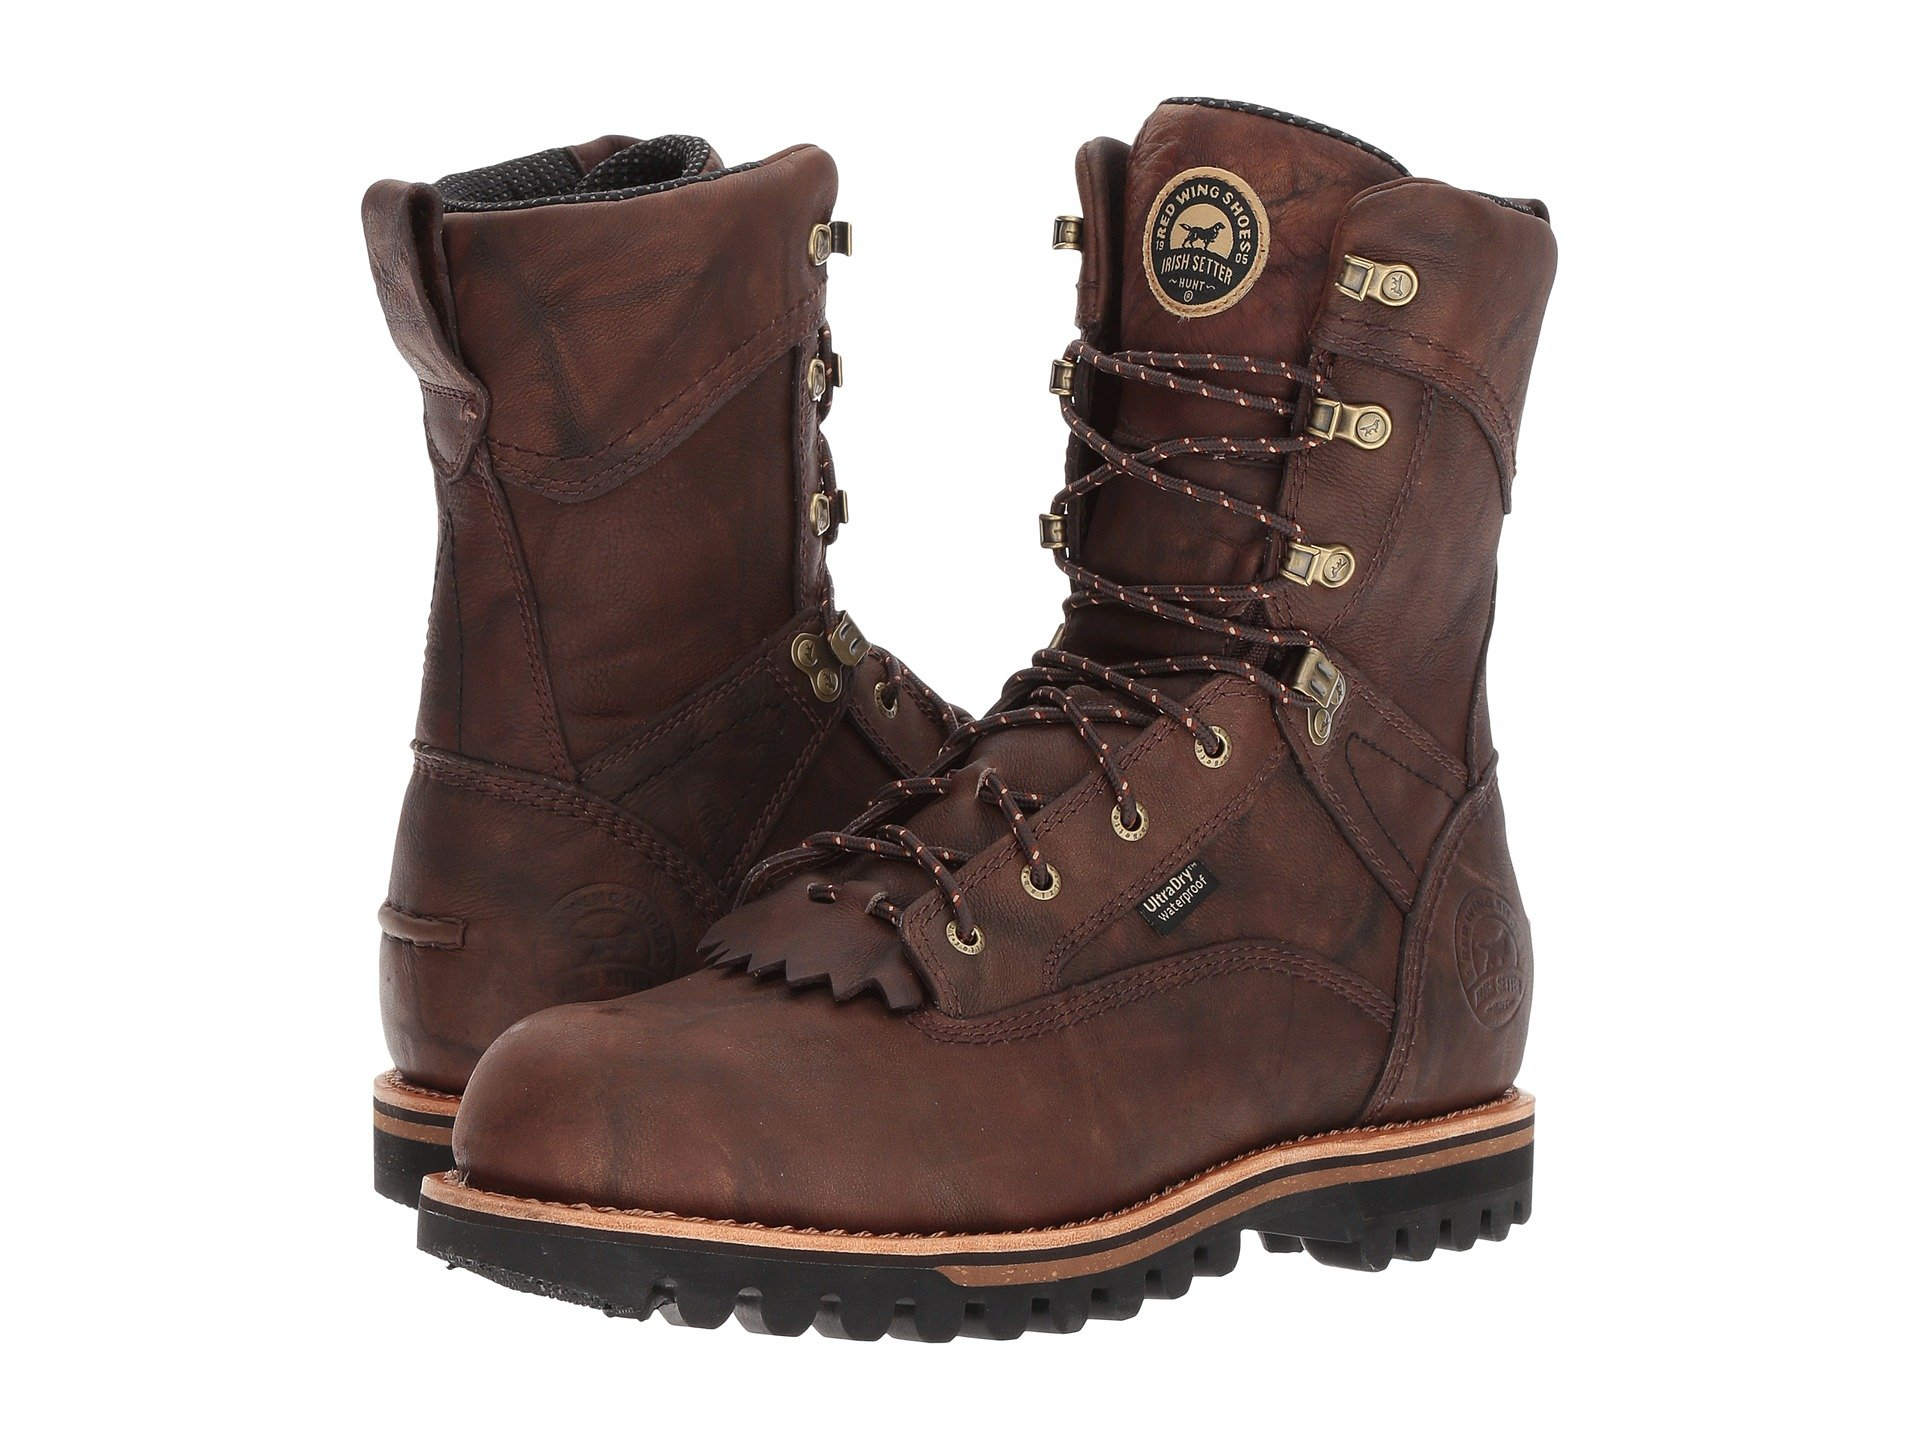 b46dd6f9ce8 Men's Irish Setter Boots + FREE SHIPPING | Shoes | Zappos.com